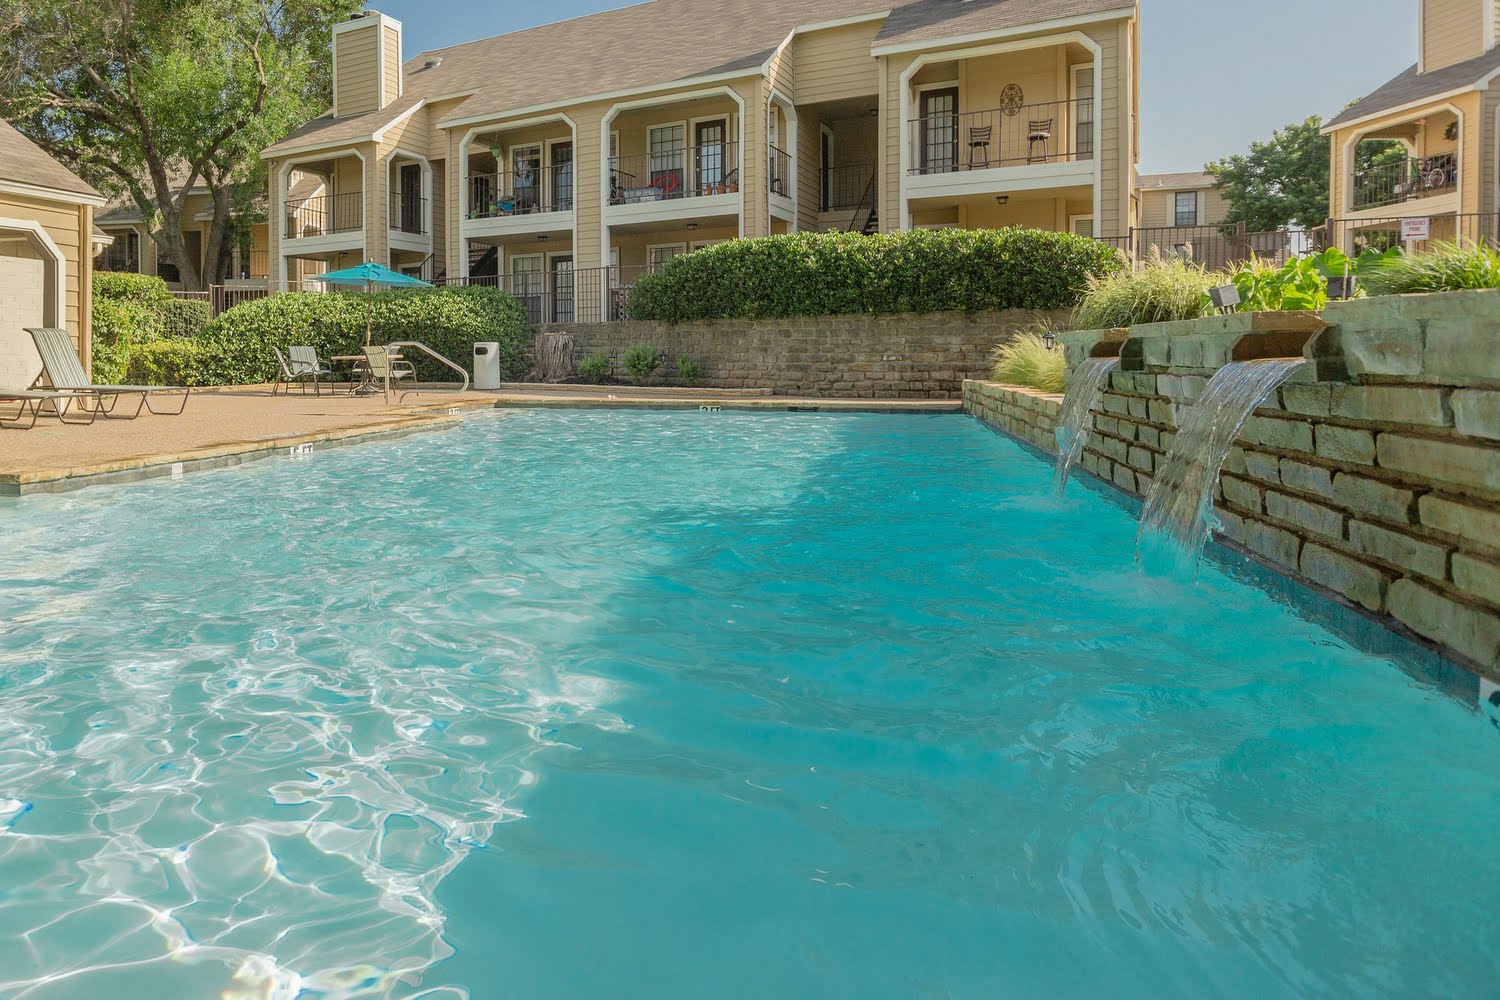 The arbors on oakmont apartments in fort worth texas for The oakmont